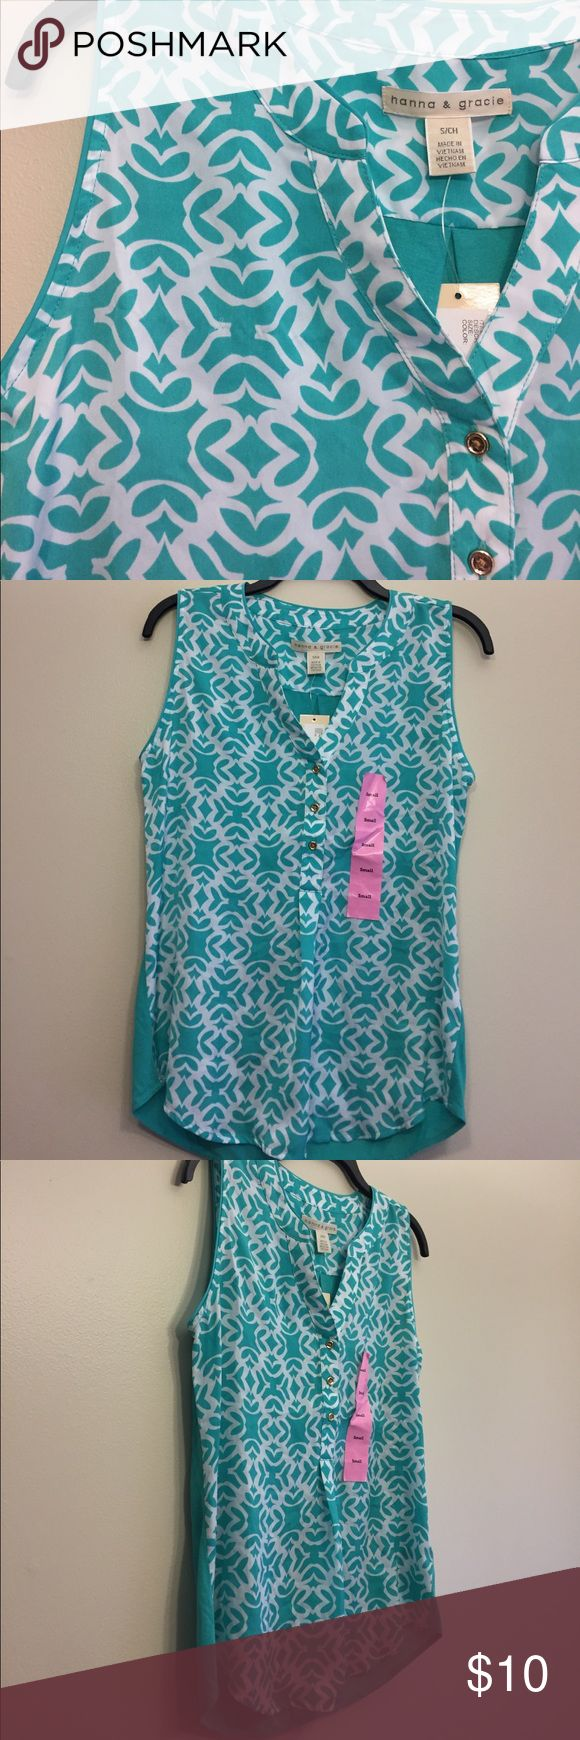 NWT Beautiful Hannah and Grace Teal Blouse Top S NWT never worn Beautiful Hannah and Grace Teal and white Blouse Top S. Comes from my pet free and smoke free home. Please check out my other listings! Thanks! Tops Blouses